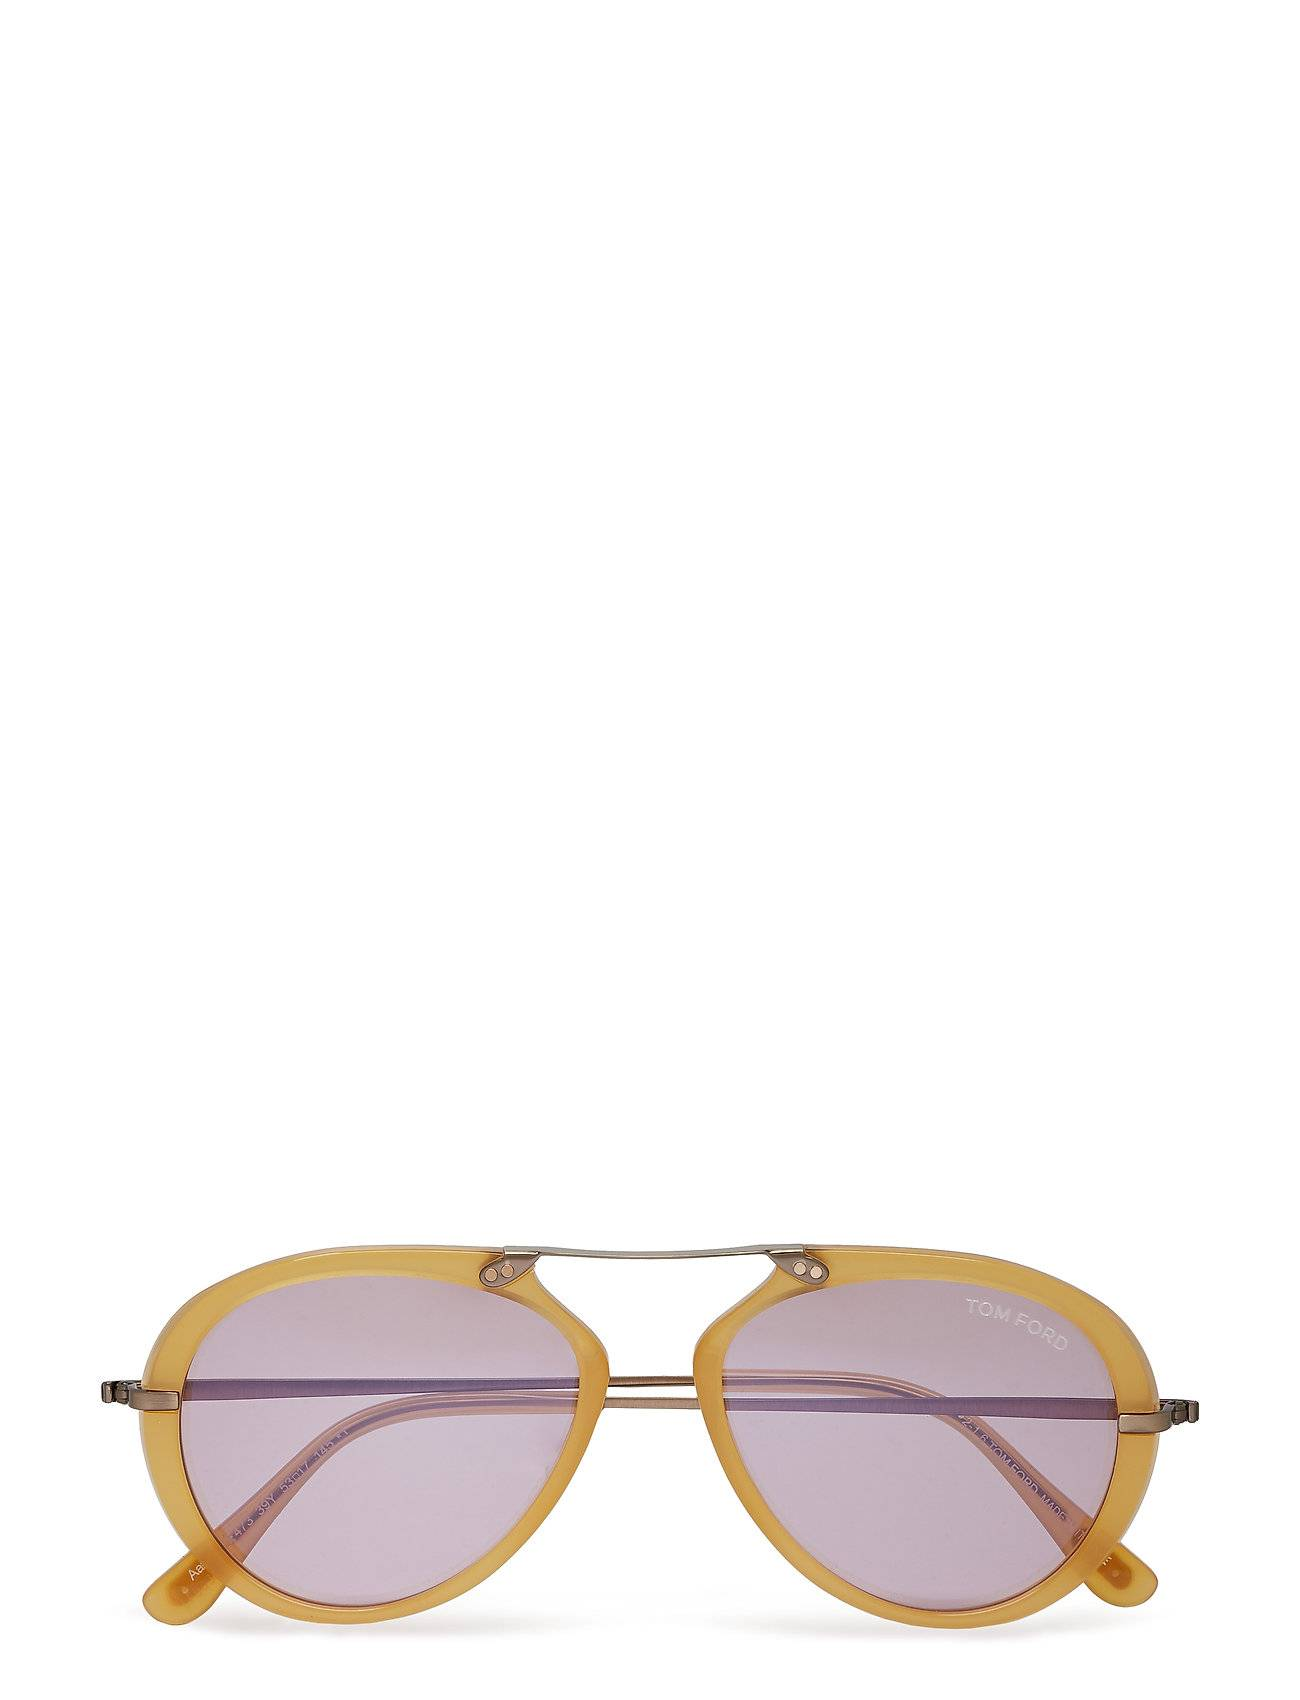 Image of Tom Ford Sunglasses Tm Ford Aaron Pilottilasit Aurinkolasit Kulta Tom Ford Sunglasses